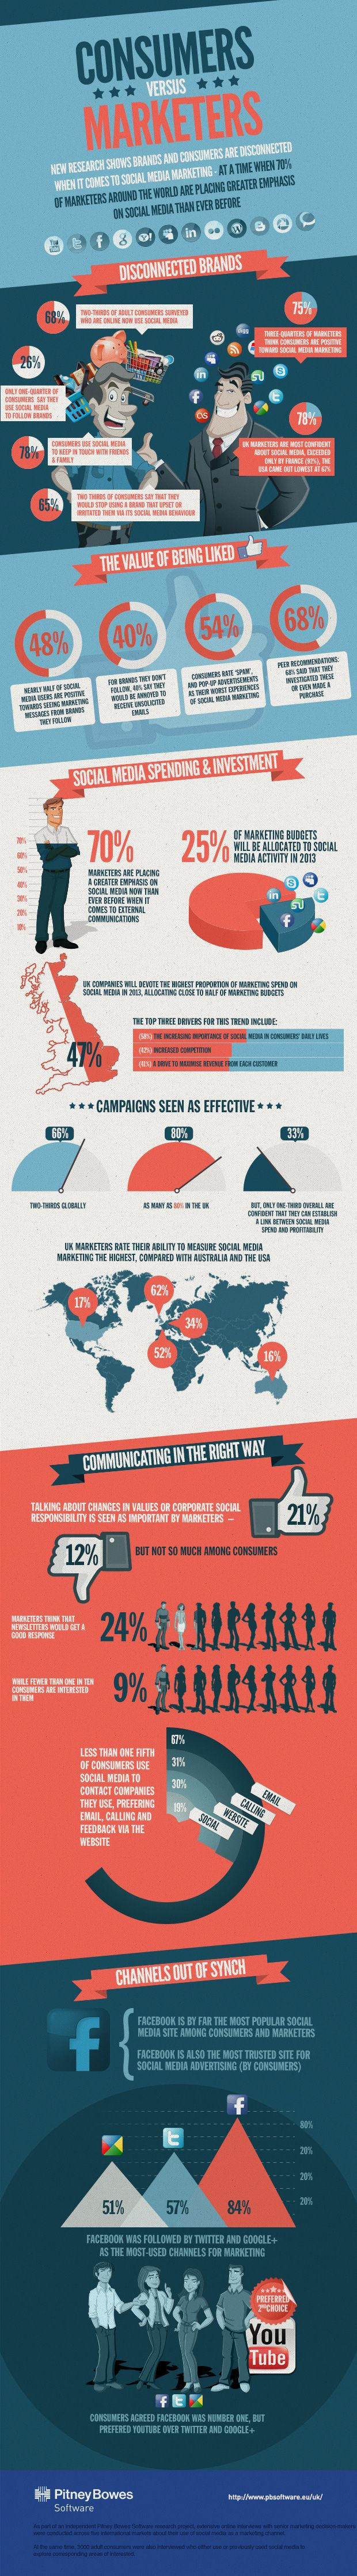 Consumers Vs Marketers – What Do We Really Want From Brands On #SocialMedia? [INFOGRAPHIC] - AllTwitter